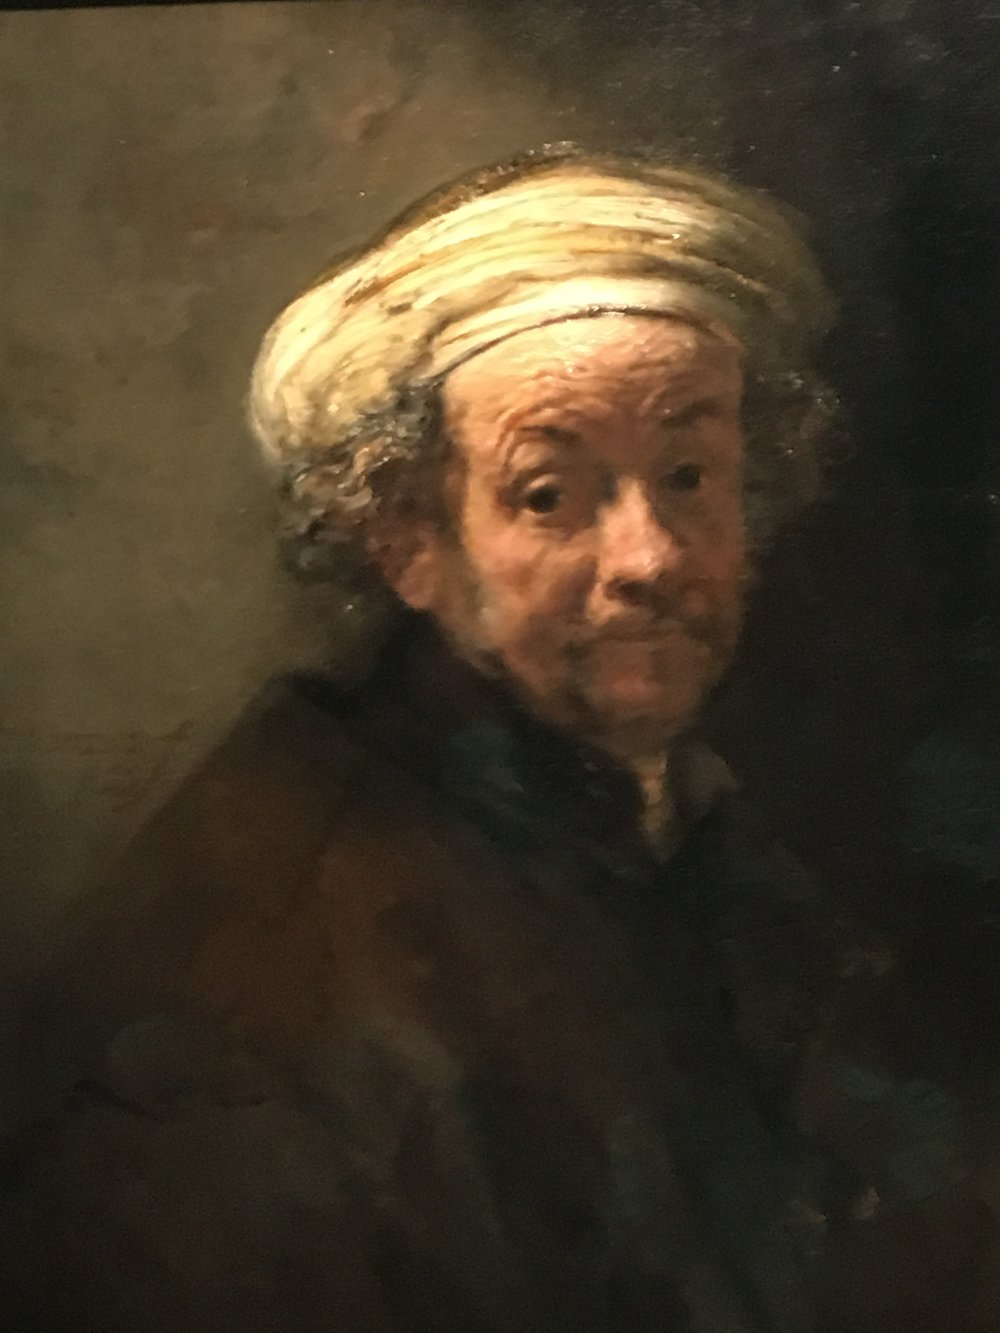 Rembrandt as the Apostle Paul